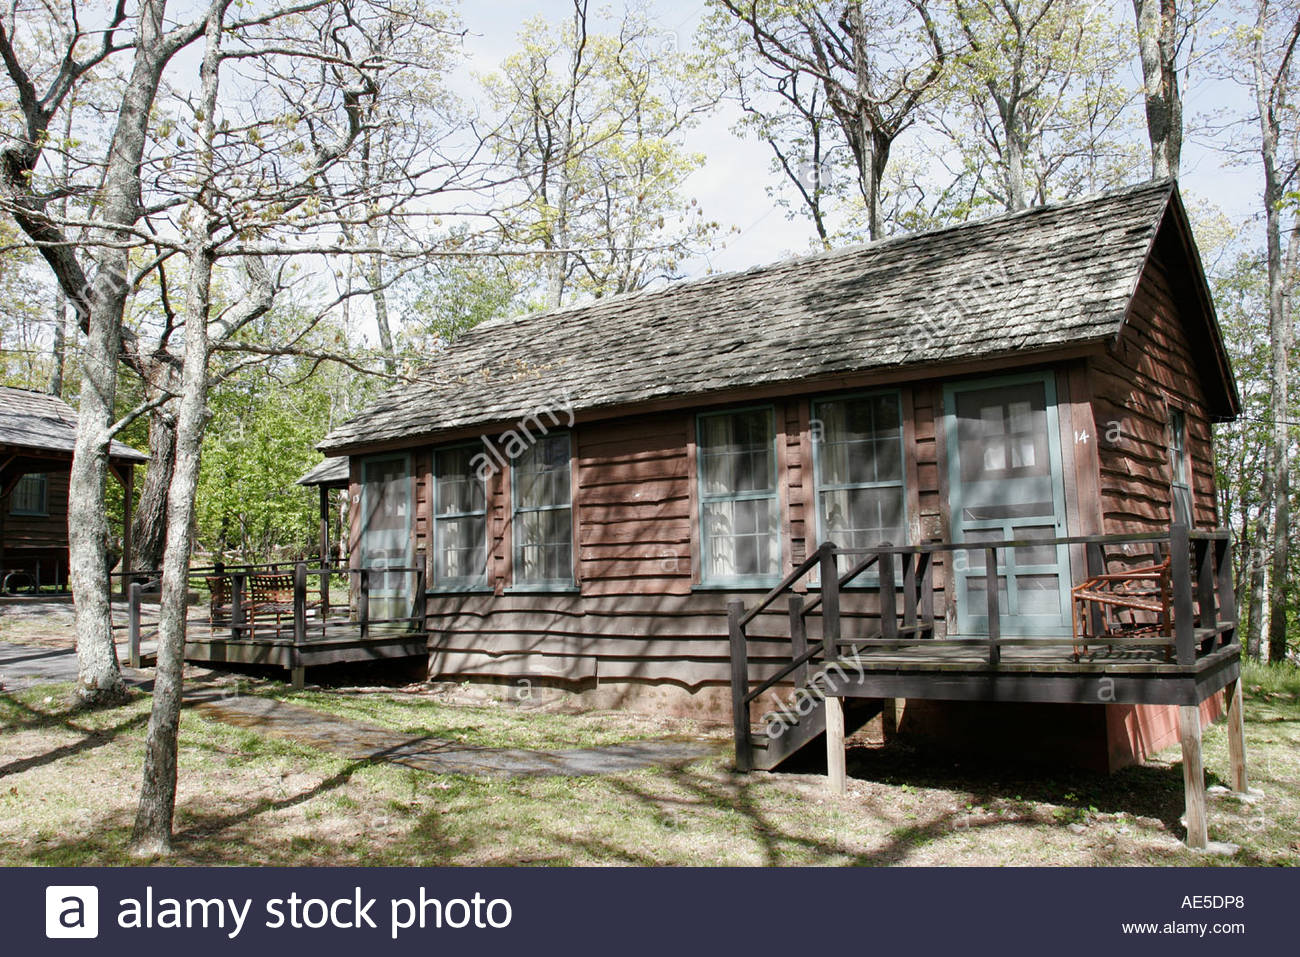 Shenandoah National Park Virginialewis Mountain Cabins